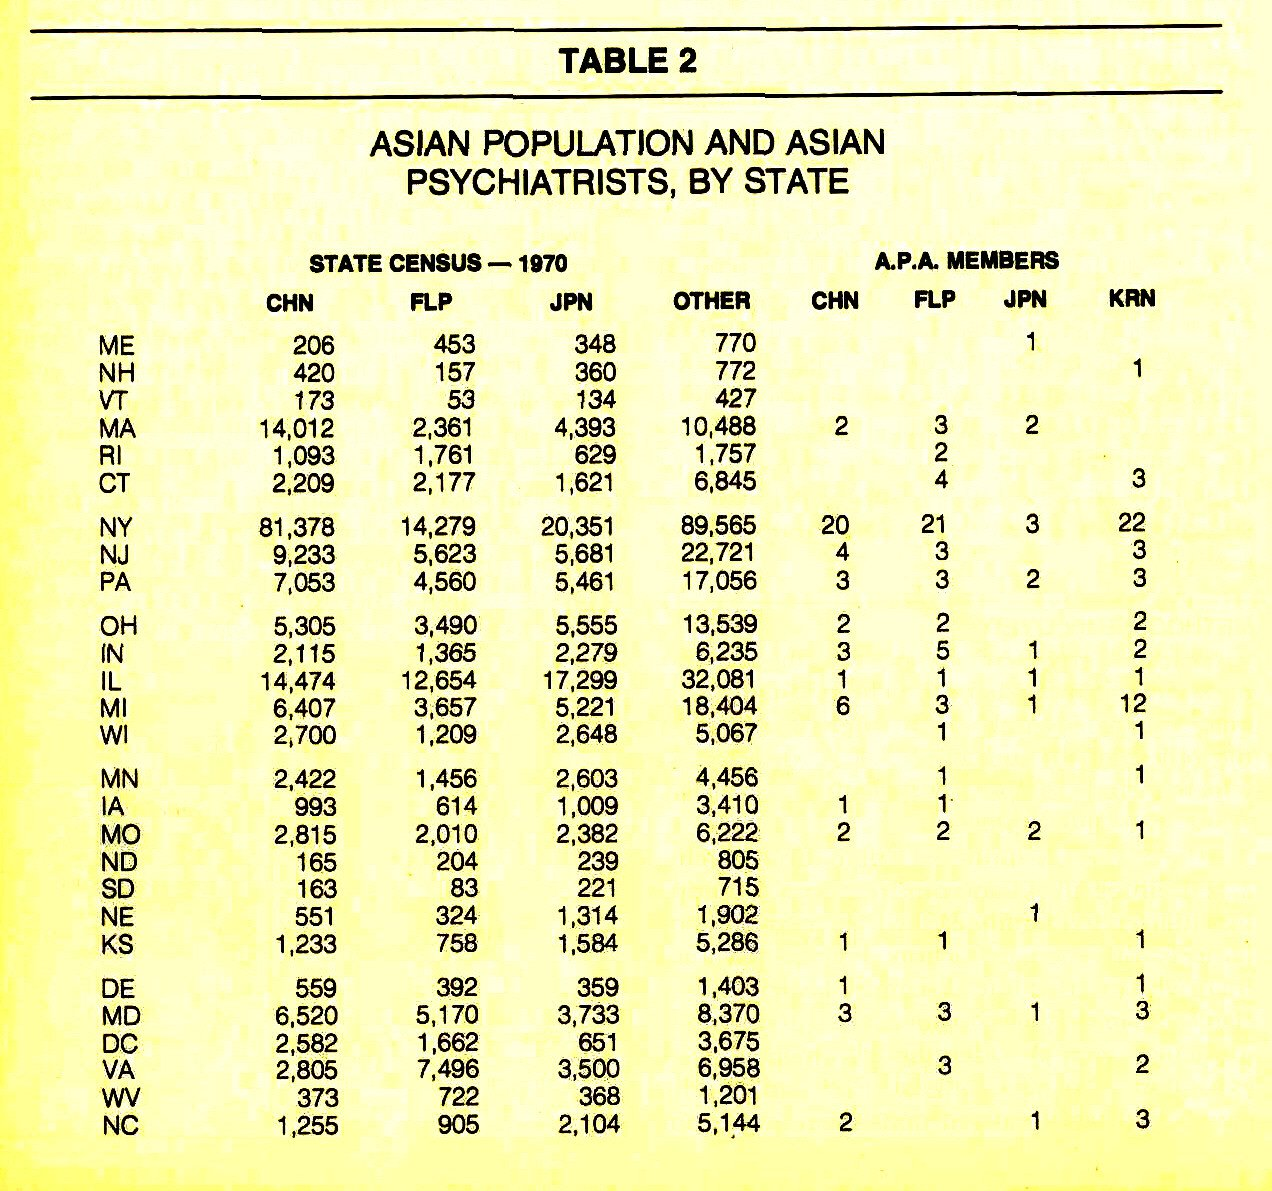 TABLE 2ASIAN POPULATION AND ASIAN PSYCHIATRISTS, BY STATE